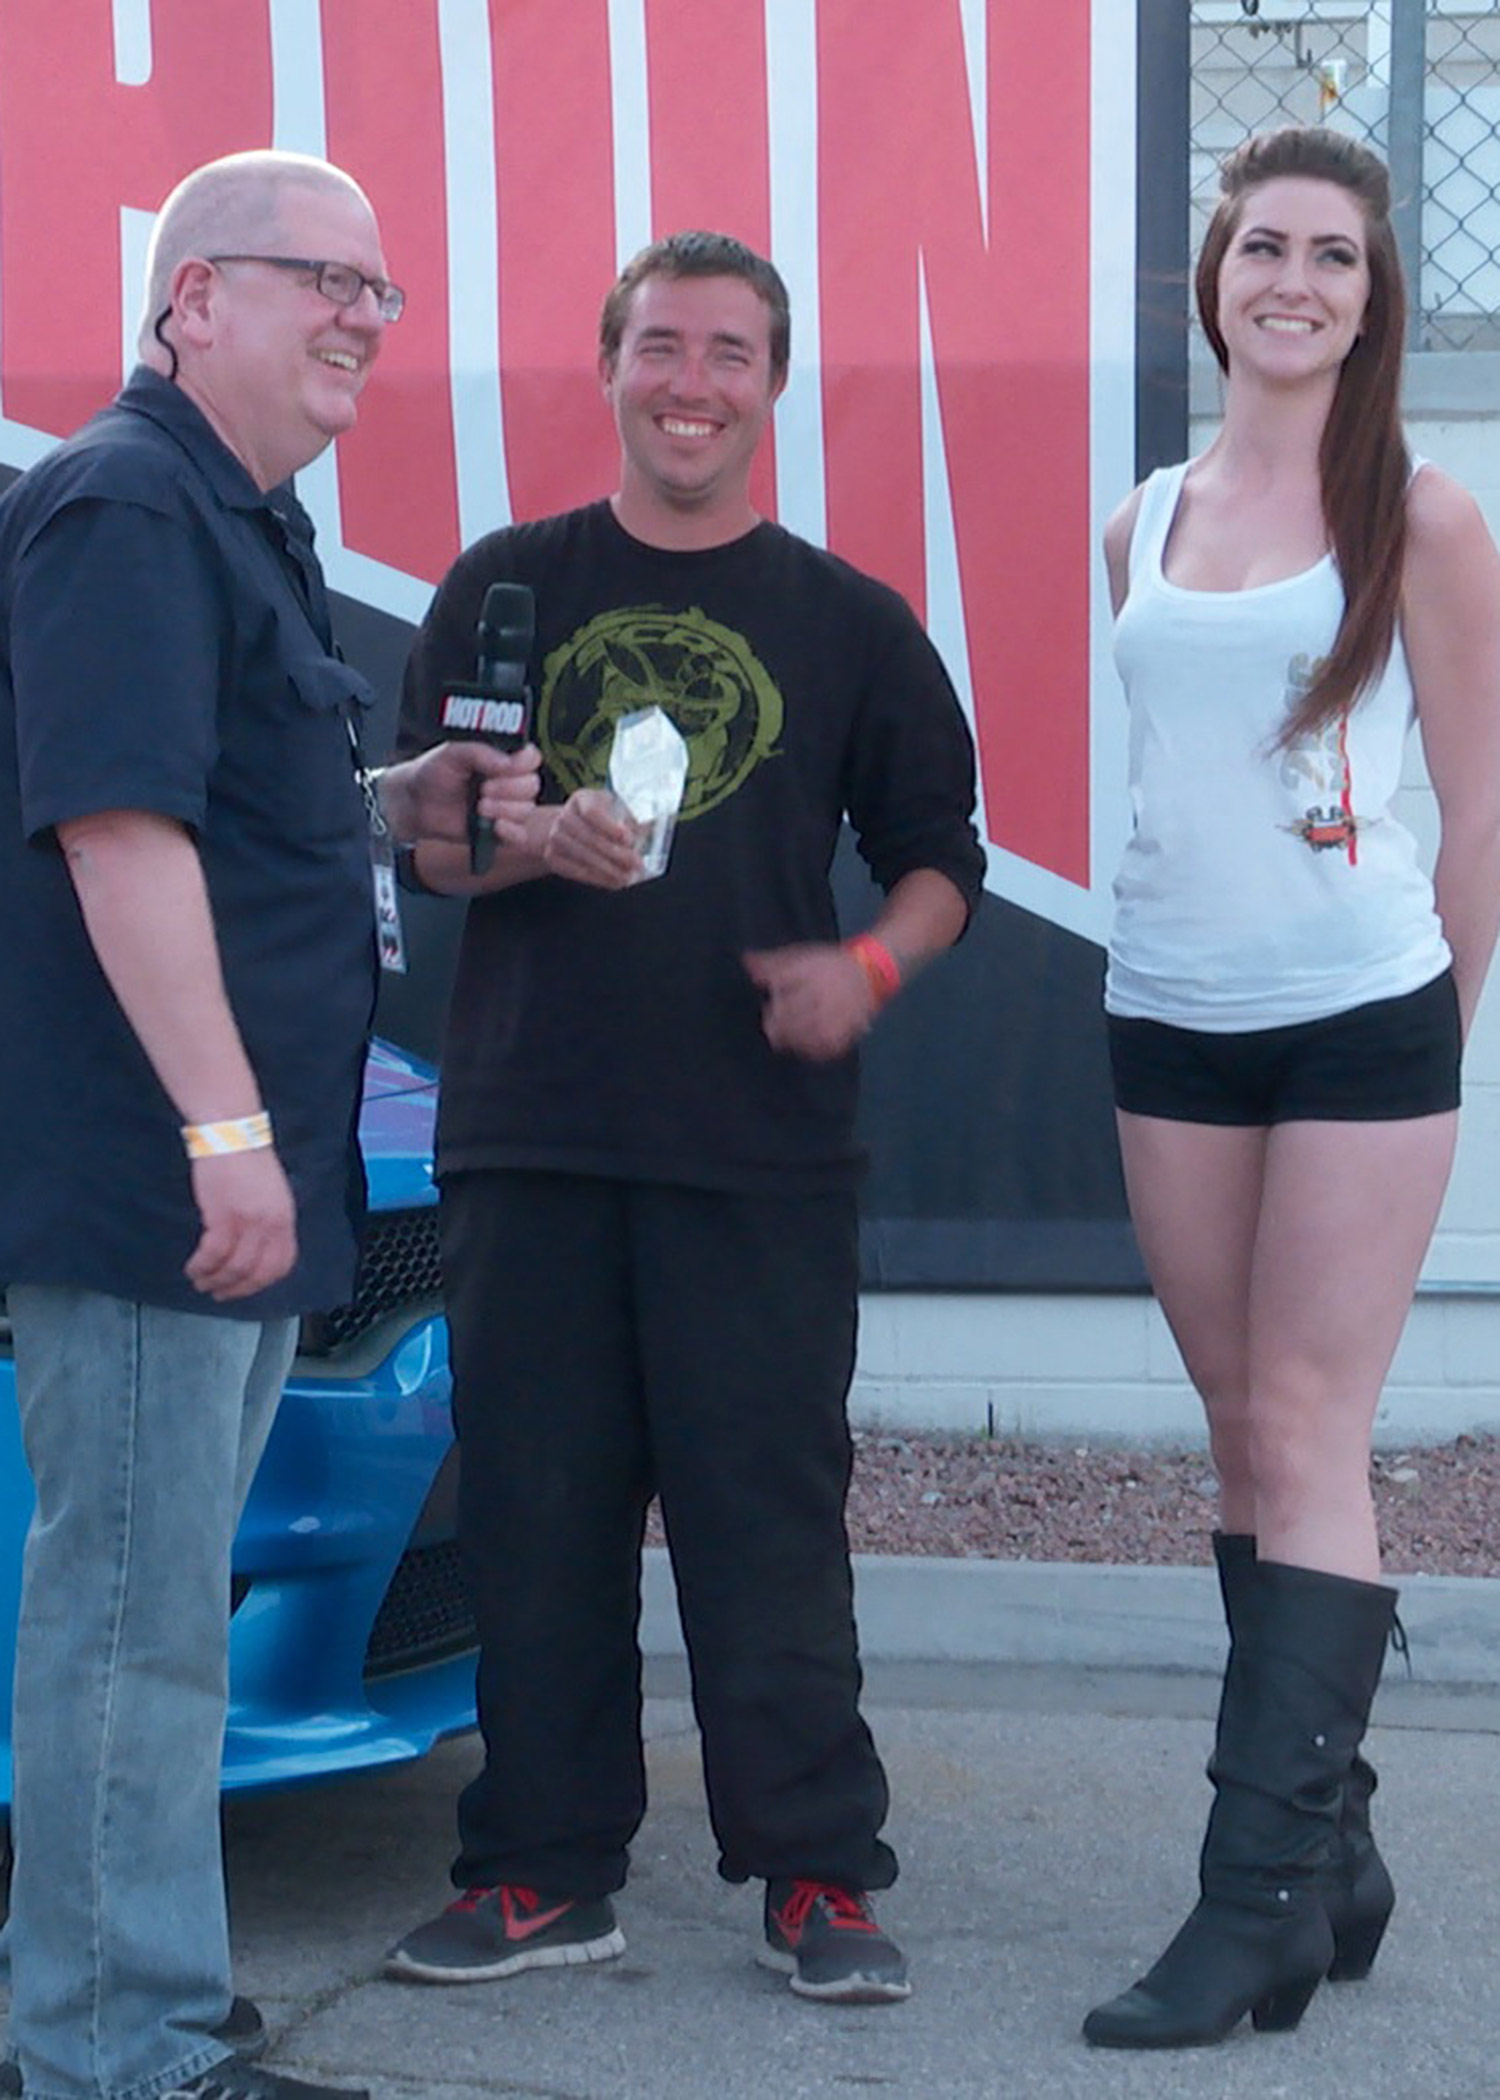 Editor Johnny Hunkins and trophy girl Blythe present David Boyer with his crystal Scat Pack Challenge trophy in the winner's circle.